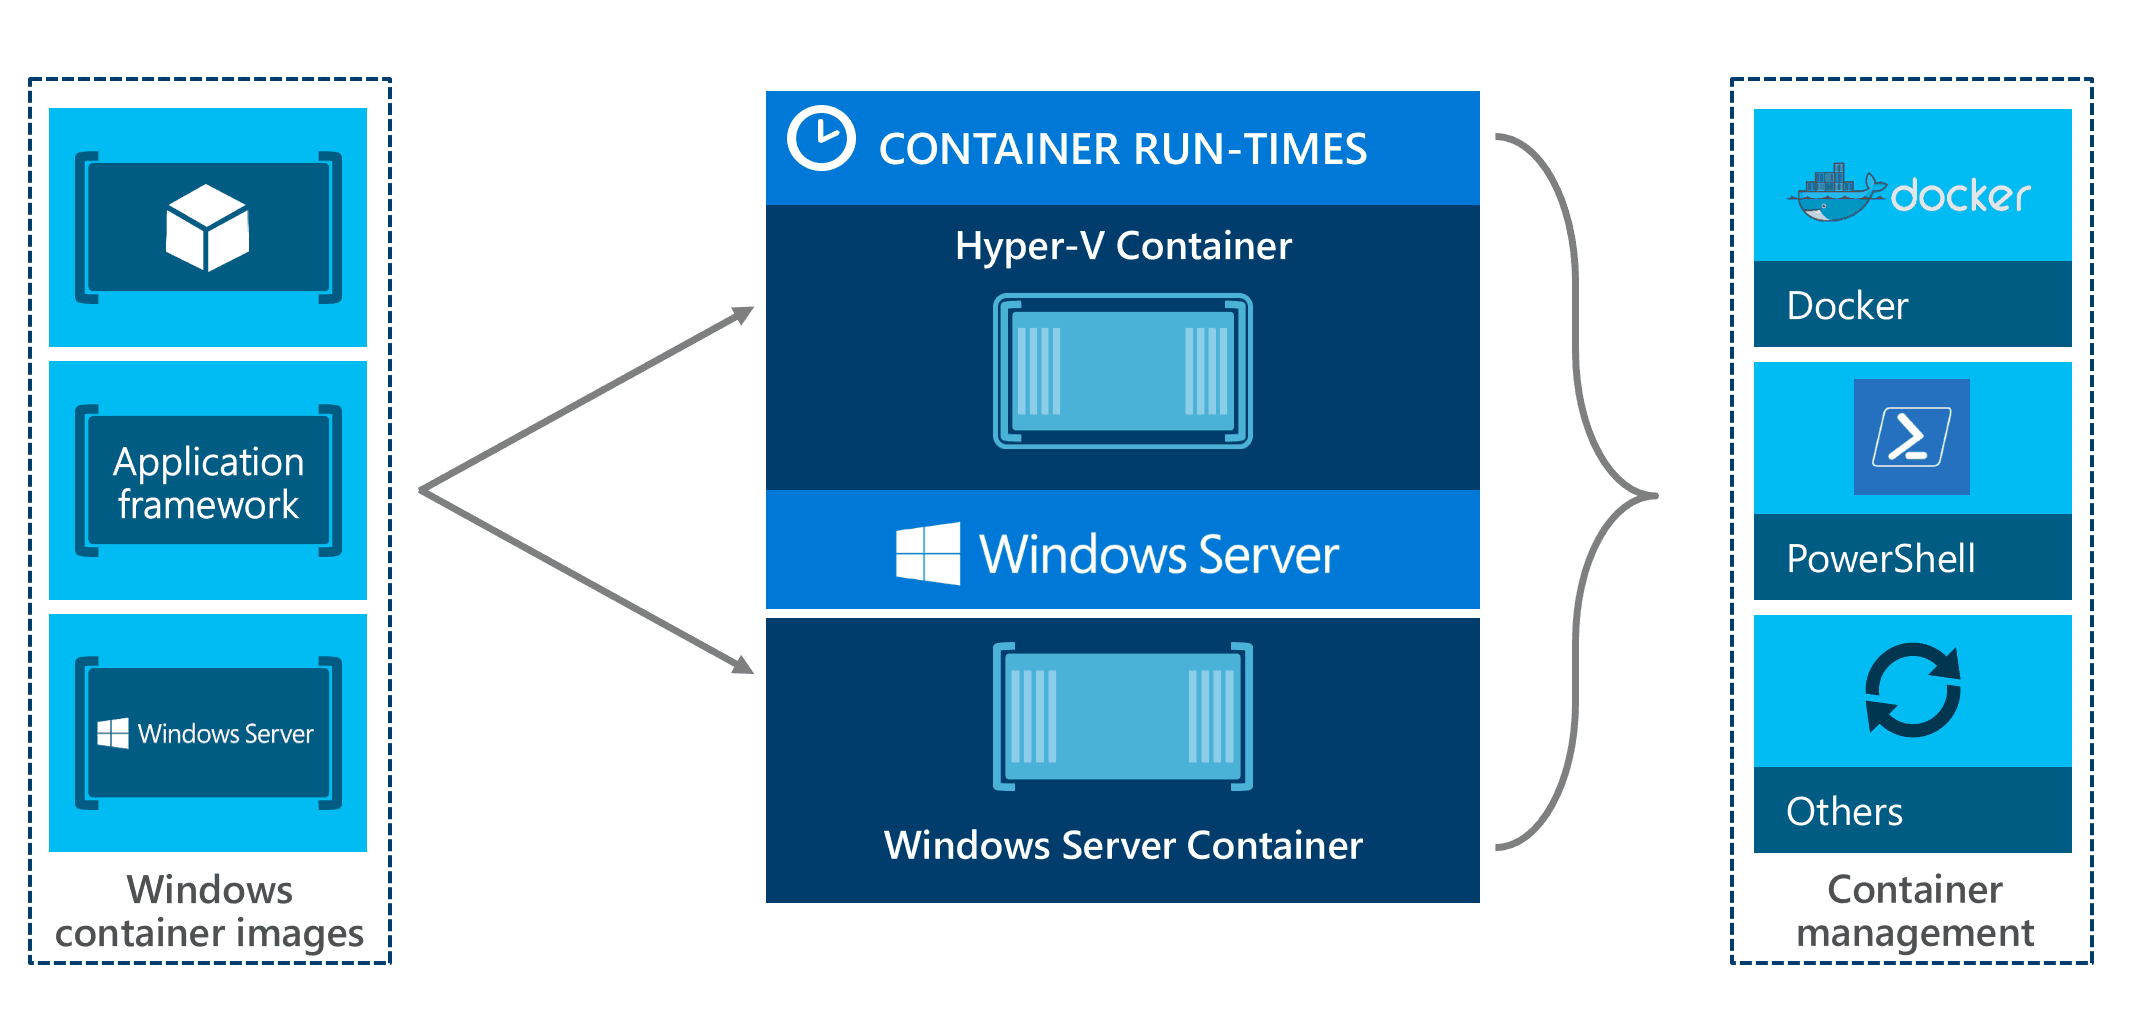 Hyper-V Windows Containers